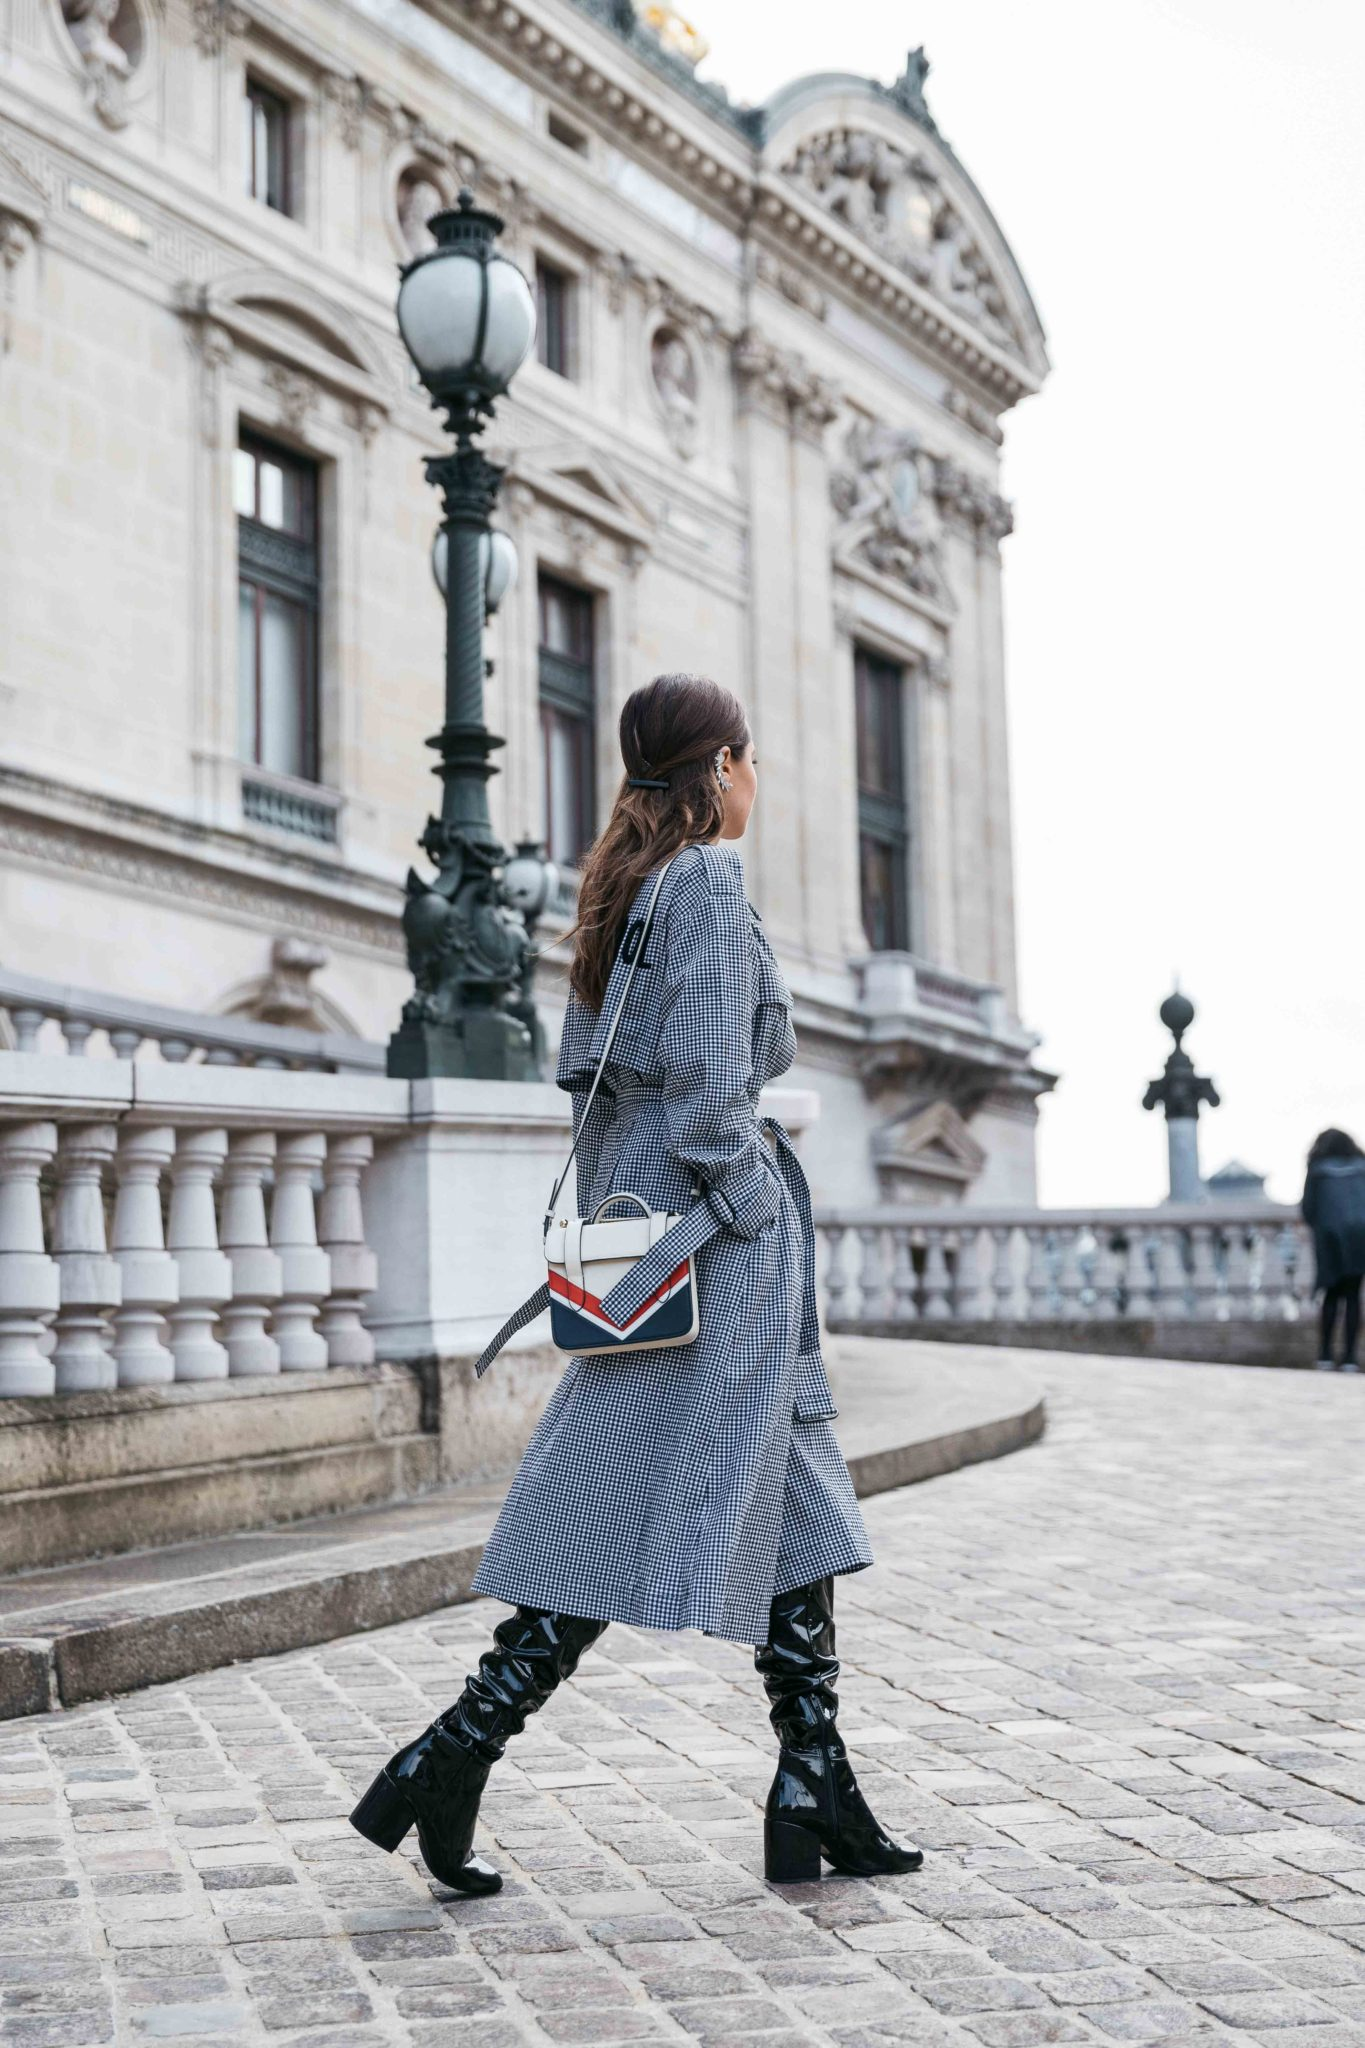 Best Street Style Paris Fashion Week Mars 2018 of Julia Comil / French Fashion Blogger in Los Angeles - Outfit for Leonard Paris Fall Winter 2018 2019 show - gingham trench coat Out Of Control by Mo&Co - Patent over the knee boots by Aldo - Strathberry bag - Shot in Paris Palais Garnier